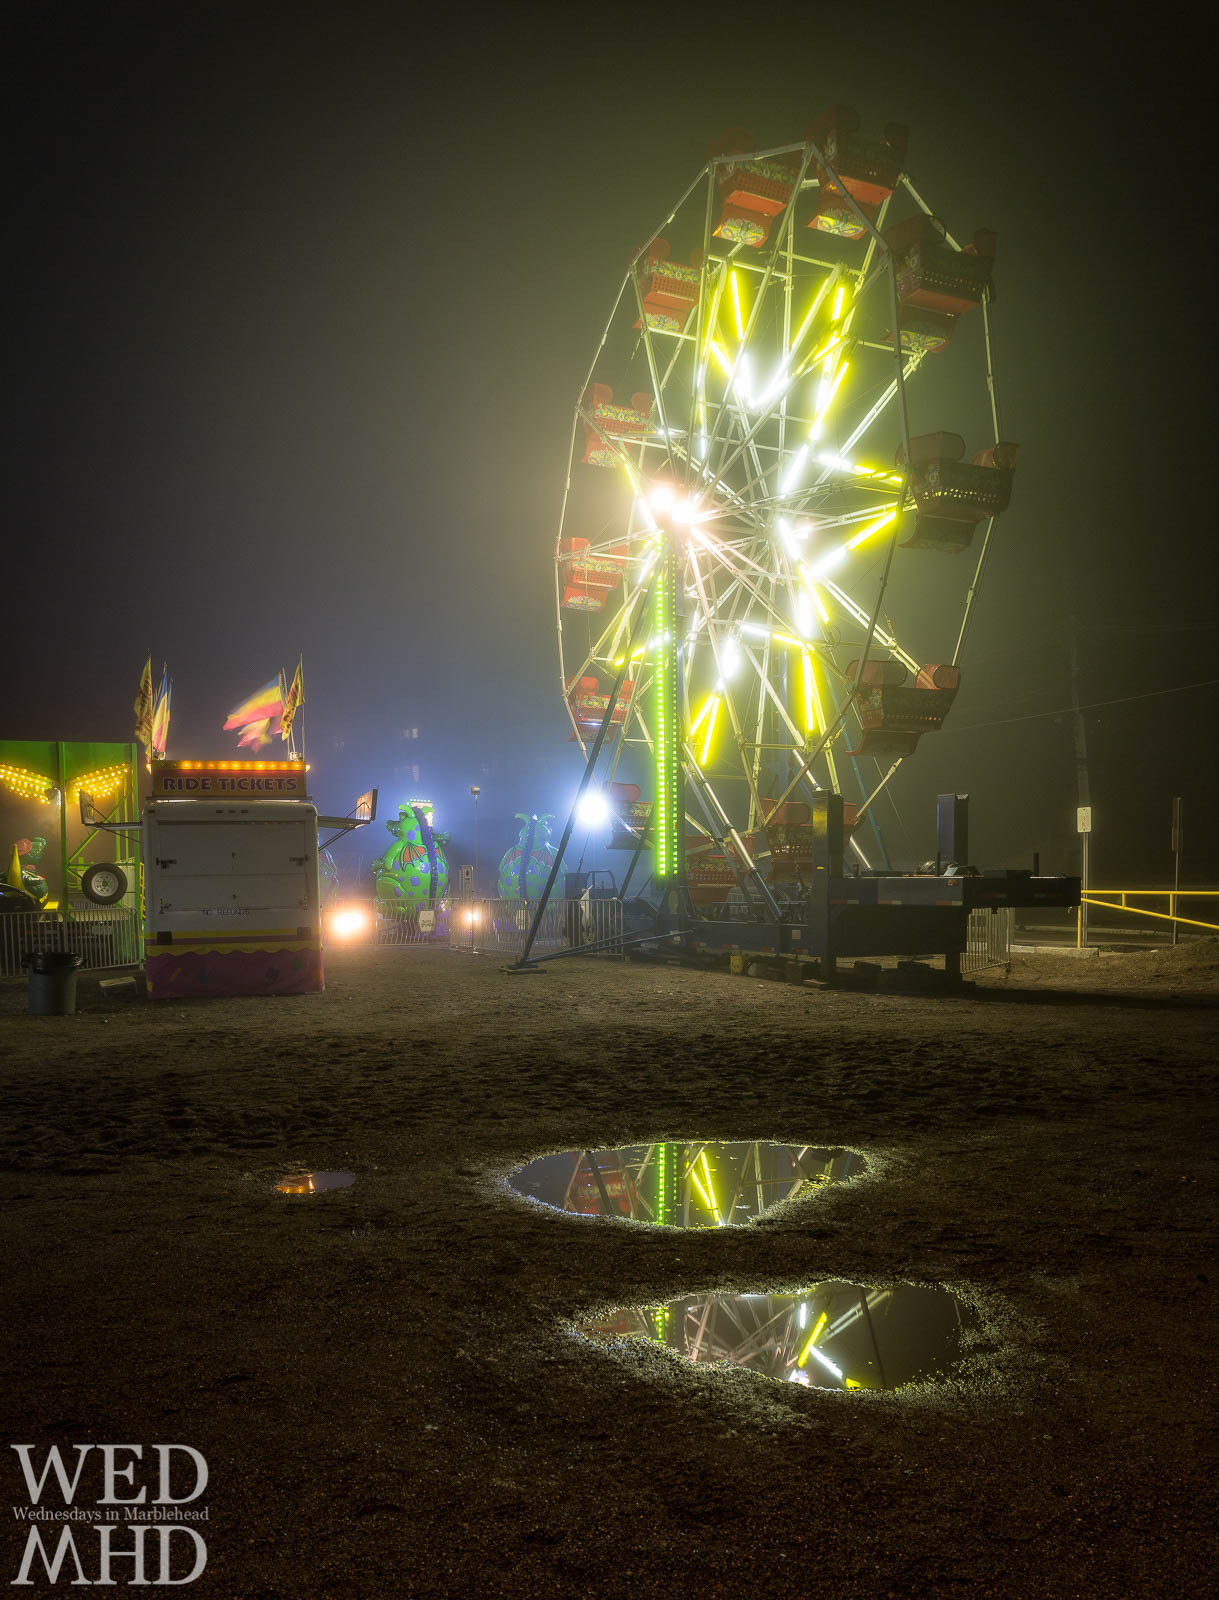 The Marblehead Carnival always brings interesting weather but the show goes on rain or shine at Devereux Beach this weekend